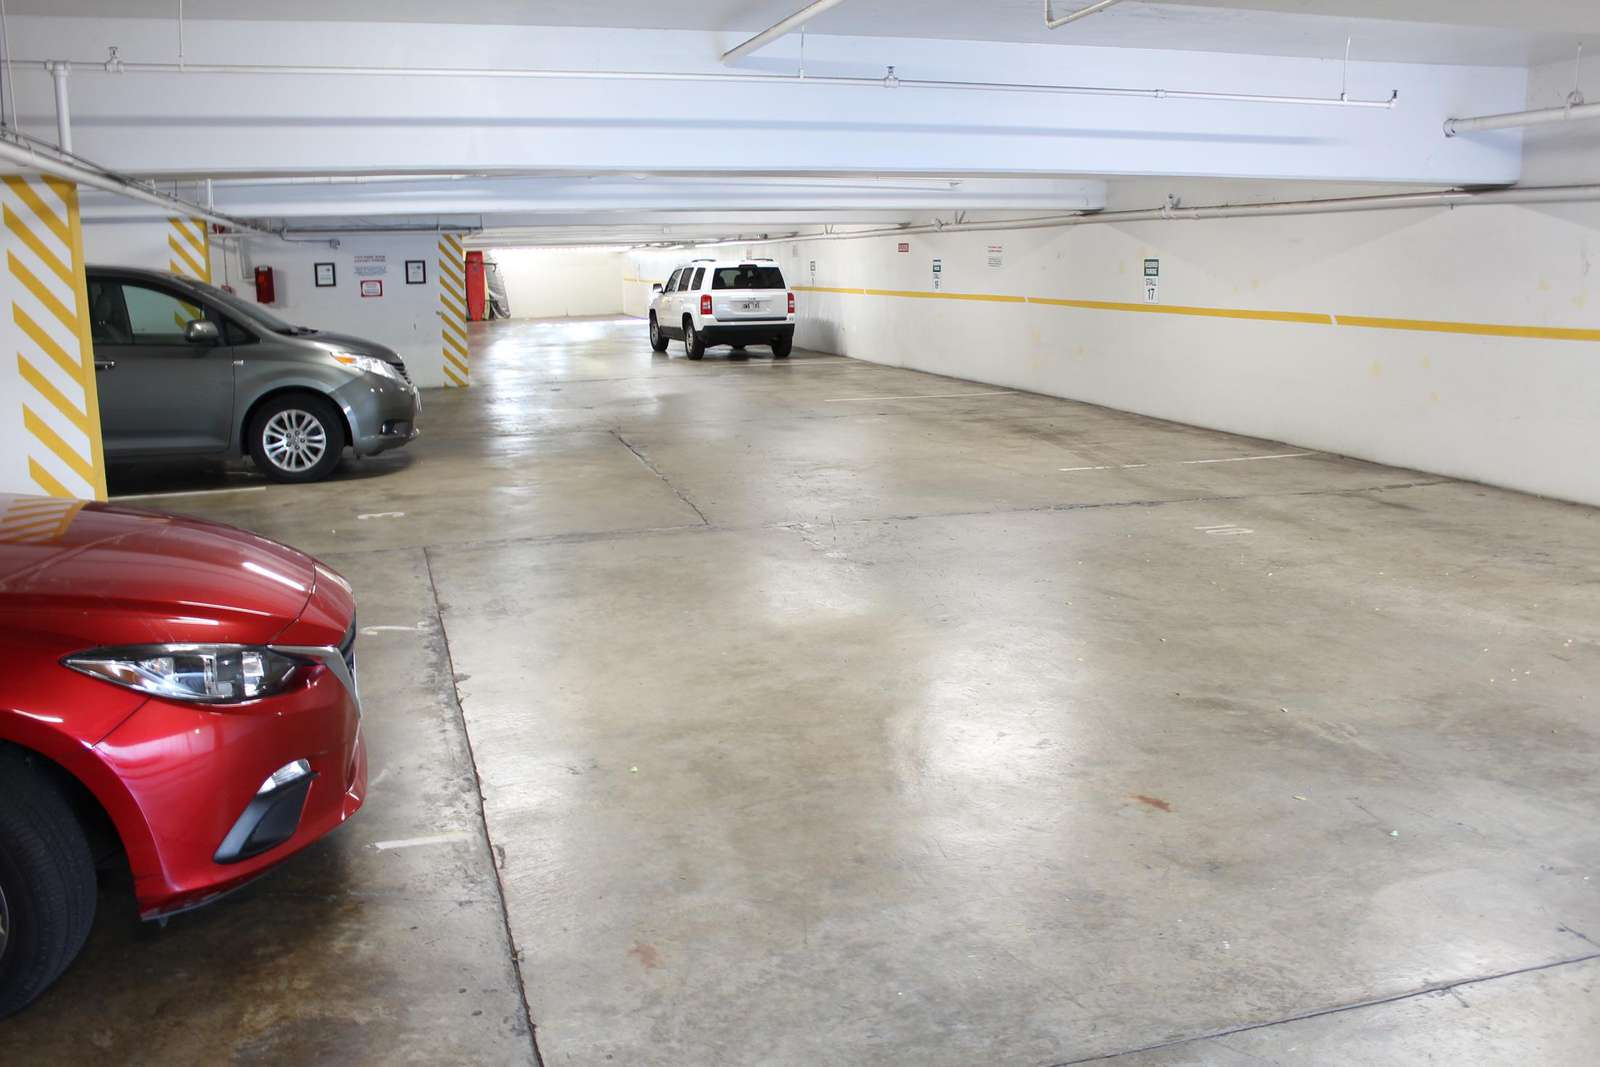 Secured Parking Garage - Must be paid for and reserved in advance - Based on availability